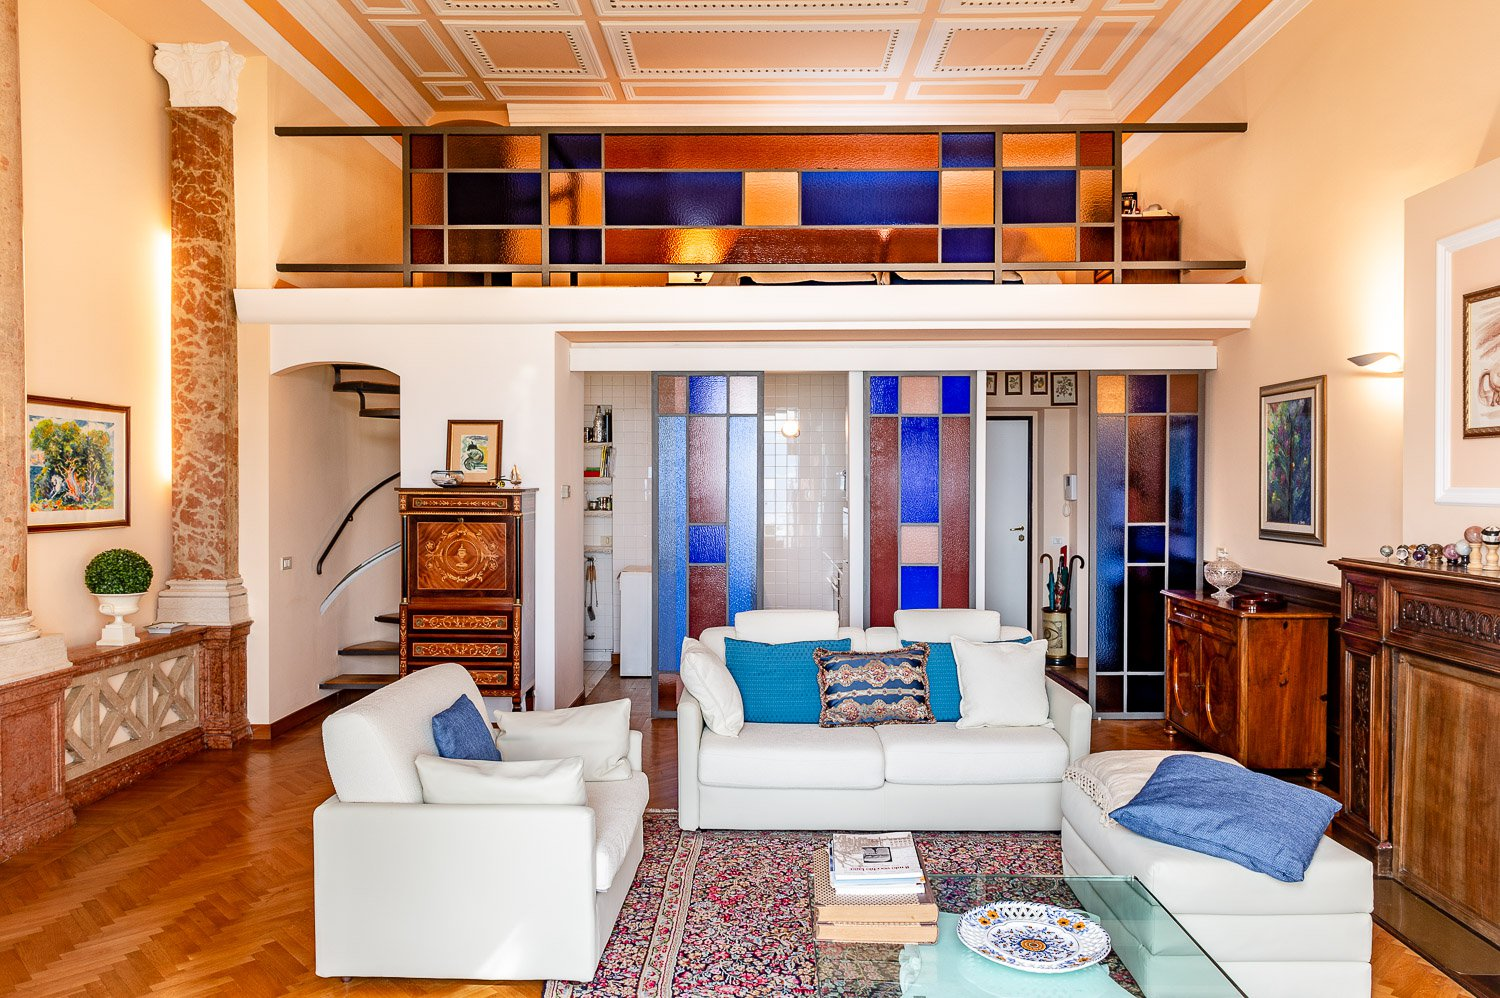 Apartment for sale in historic villa in Baveno - living room with loft